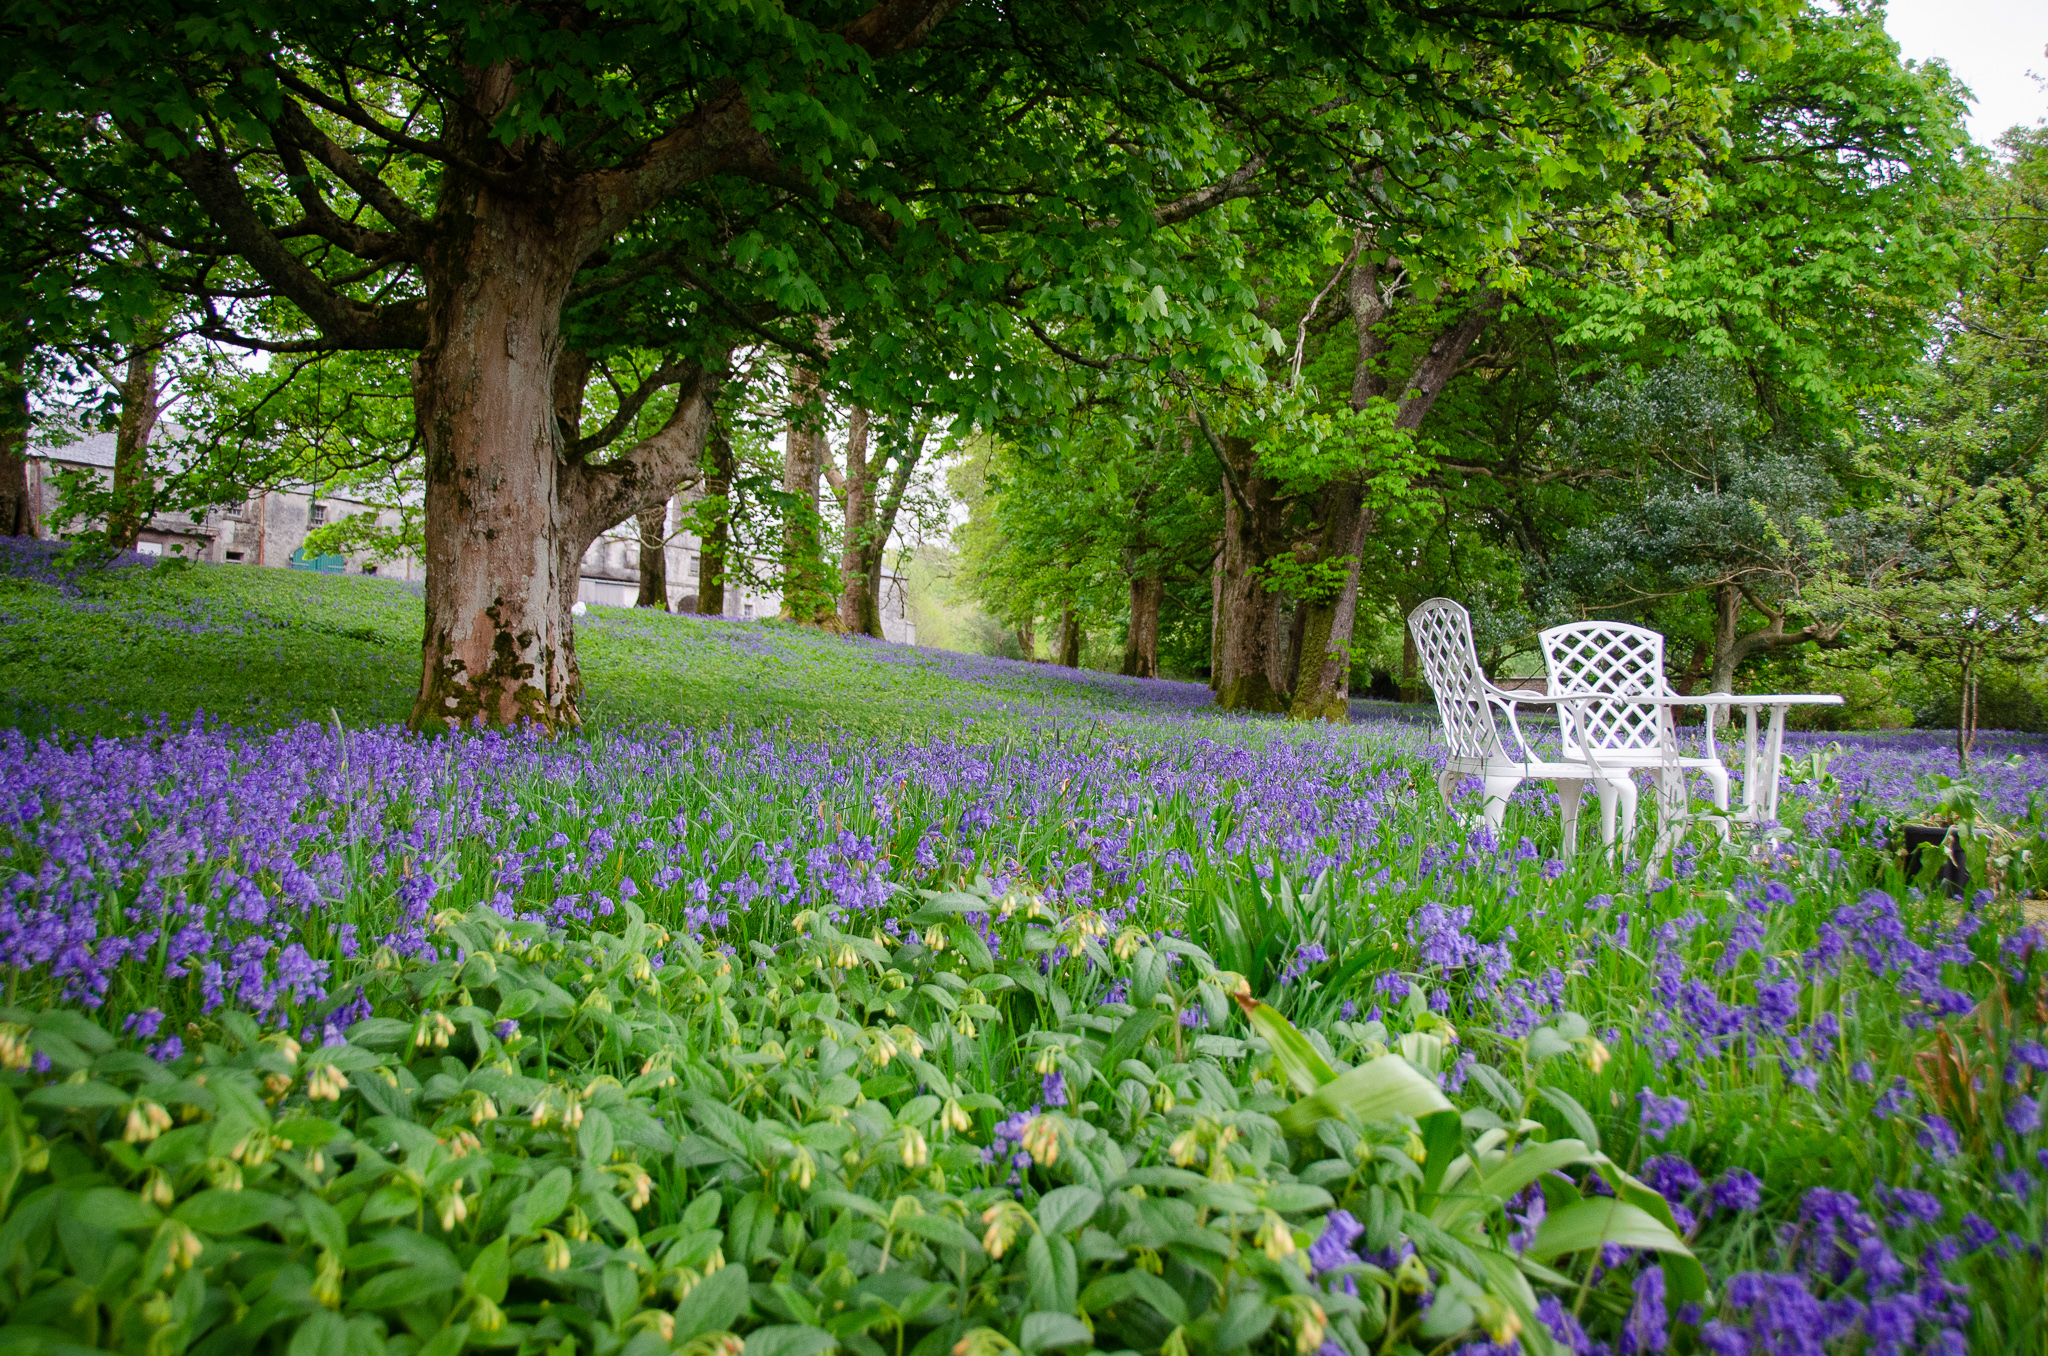 Where could possibly be a better place to while away an afternoon amongst the bluebells?